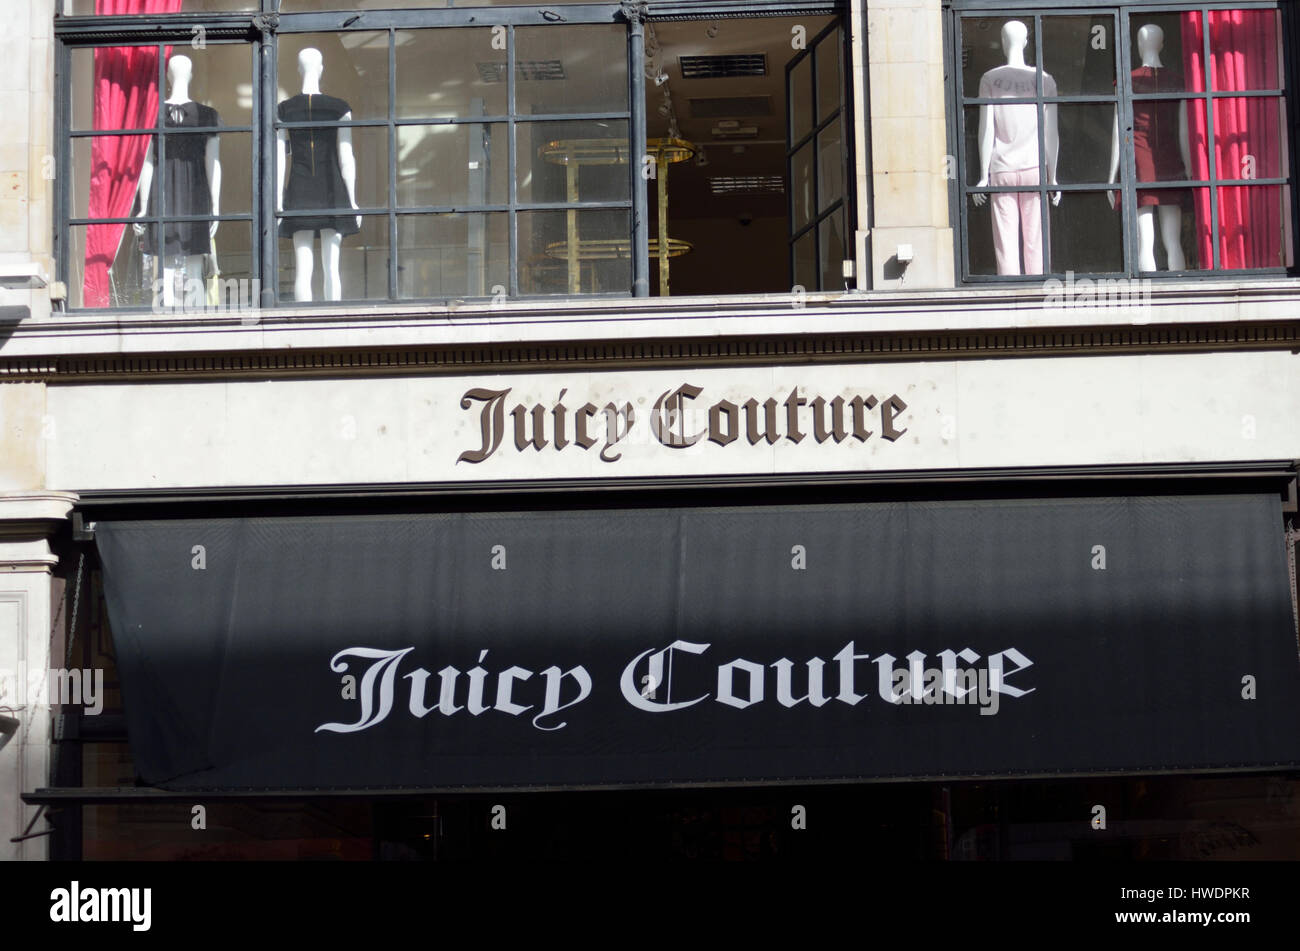 Juicy Couture fashion store in Regents St, London, UK. - Stock Image